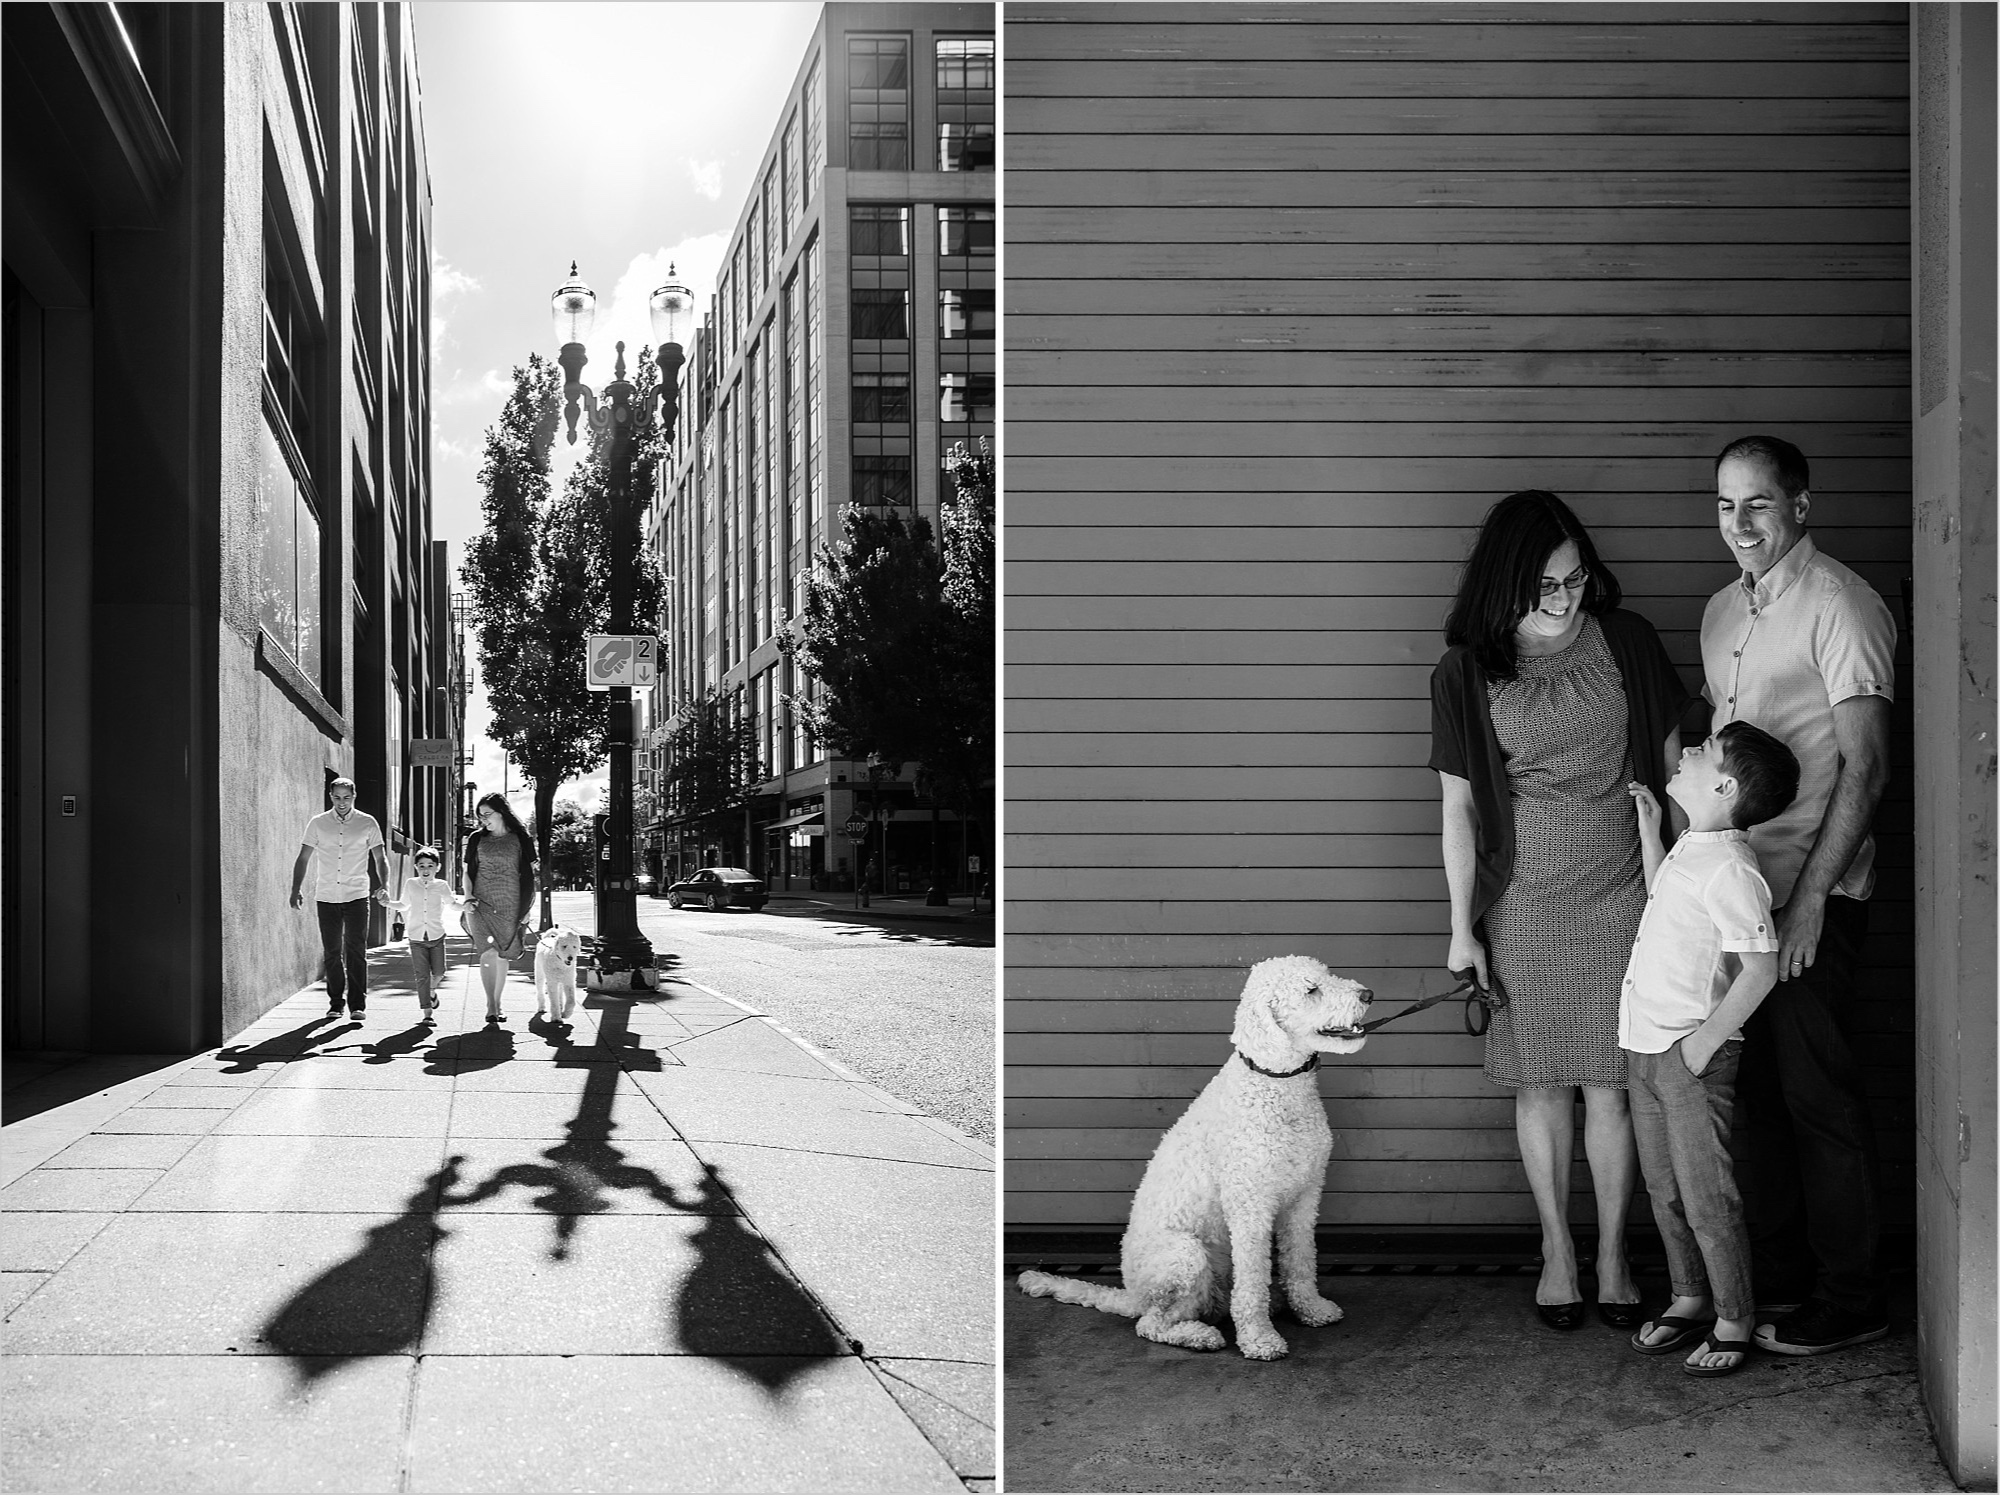 monochrome images of family enjoying their time in downtown portland oregon by hunnicutt photography